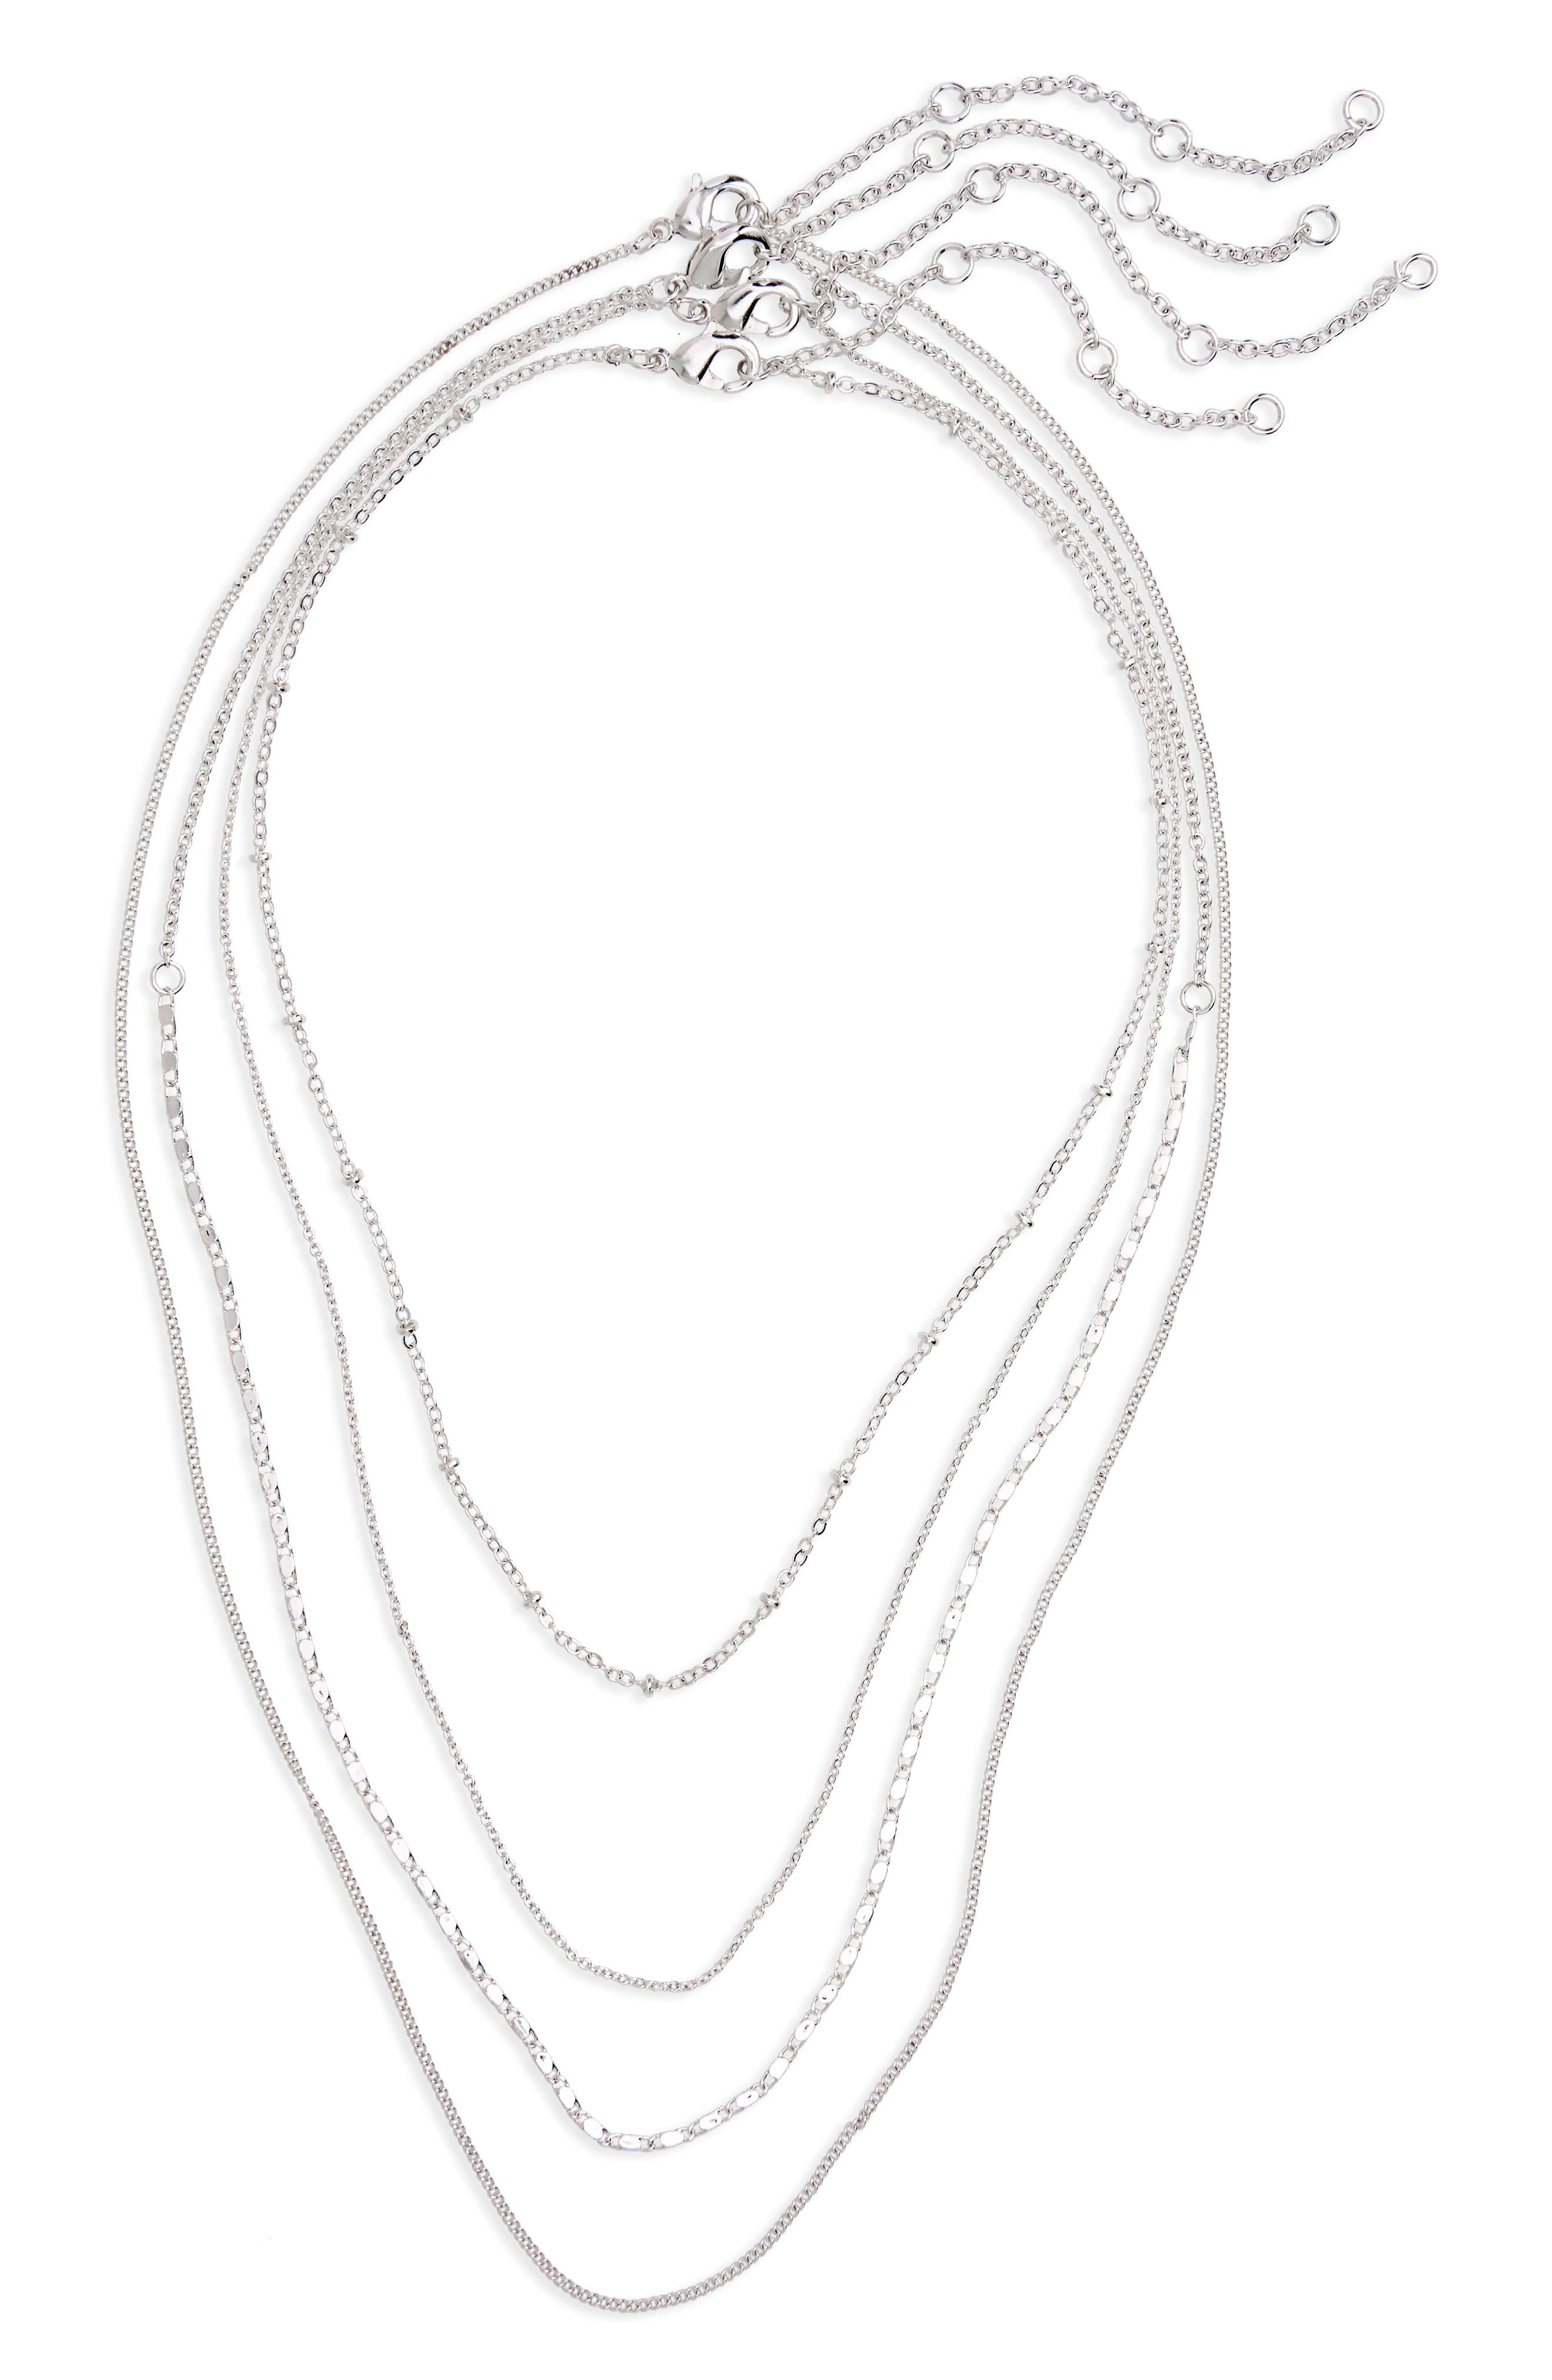 4-Pack Chain Necklaces,                             Main thumbnail 1, color,                             Silver